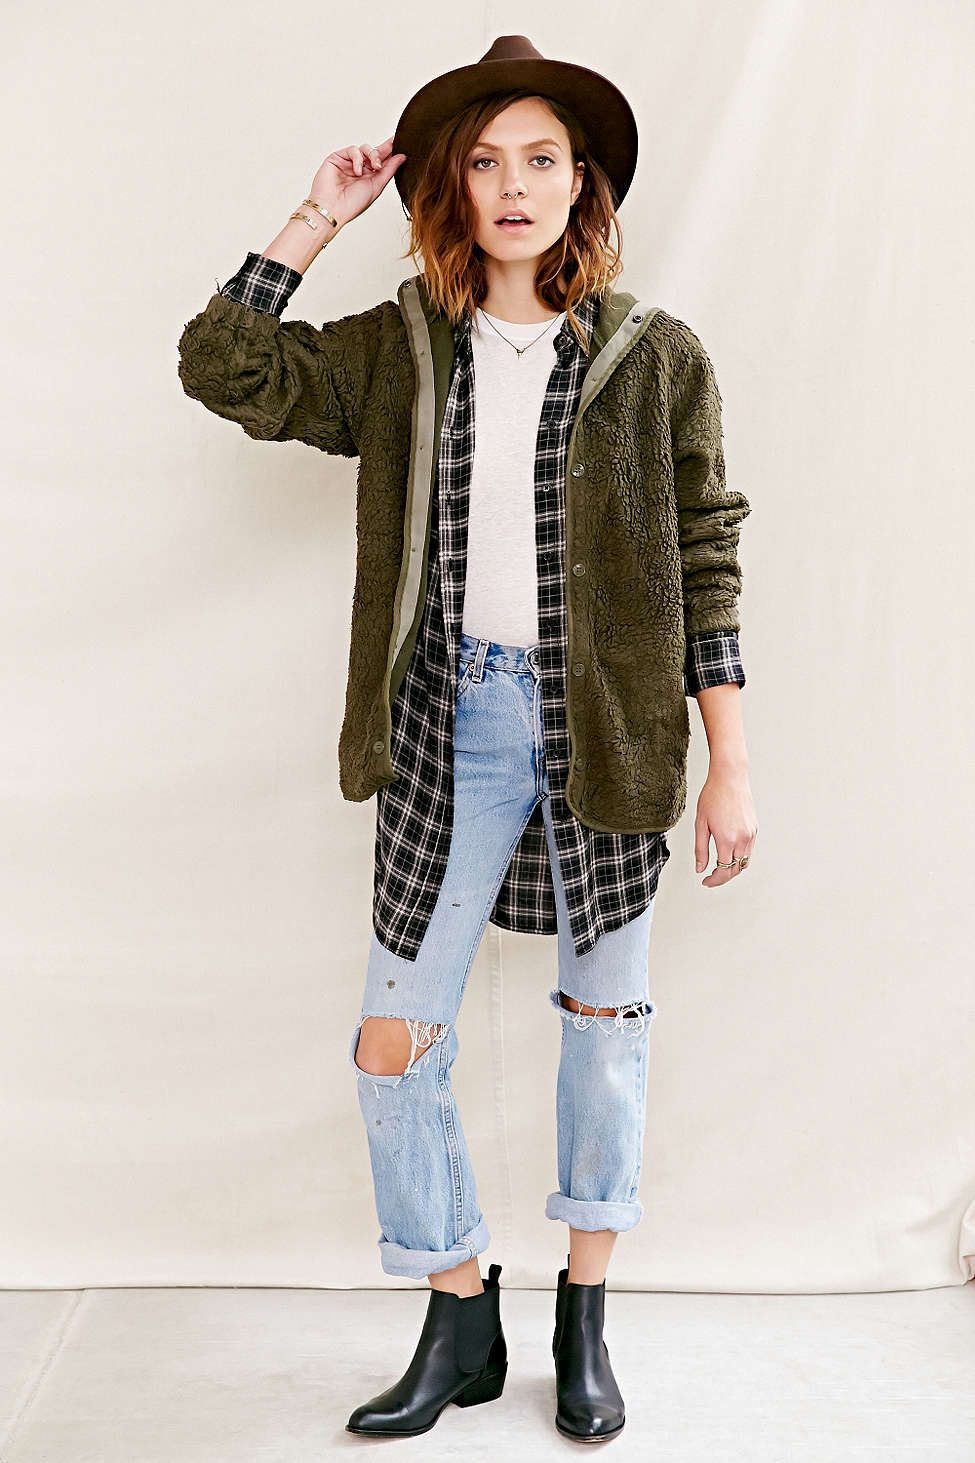 Flannel outfits for women  Urban Renewal Vintage Hooded French Liner Jacket  outfits to